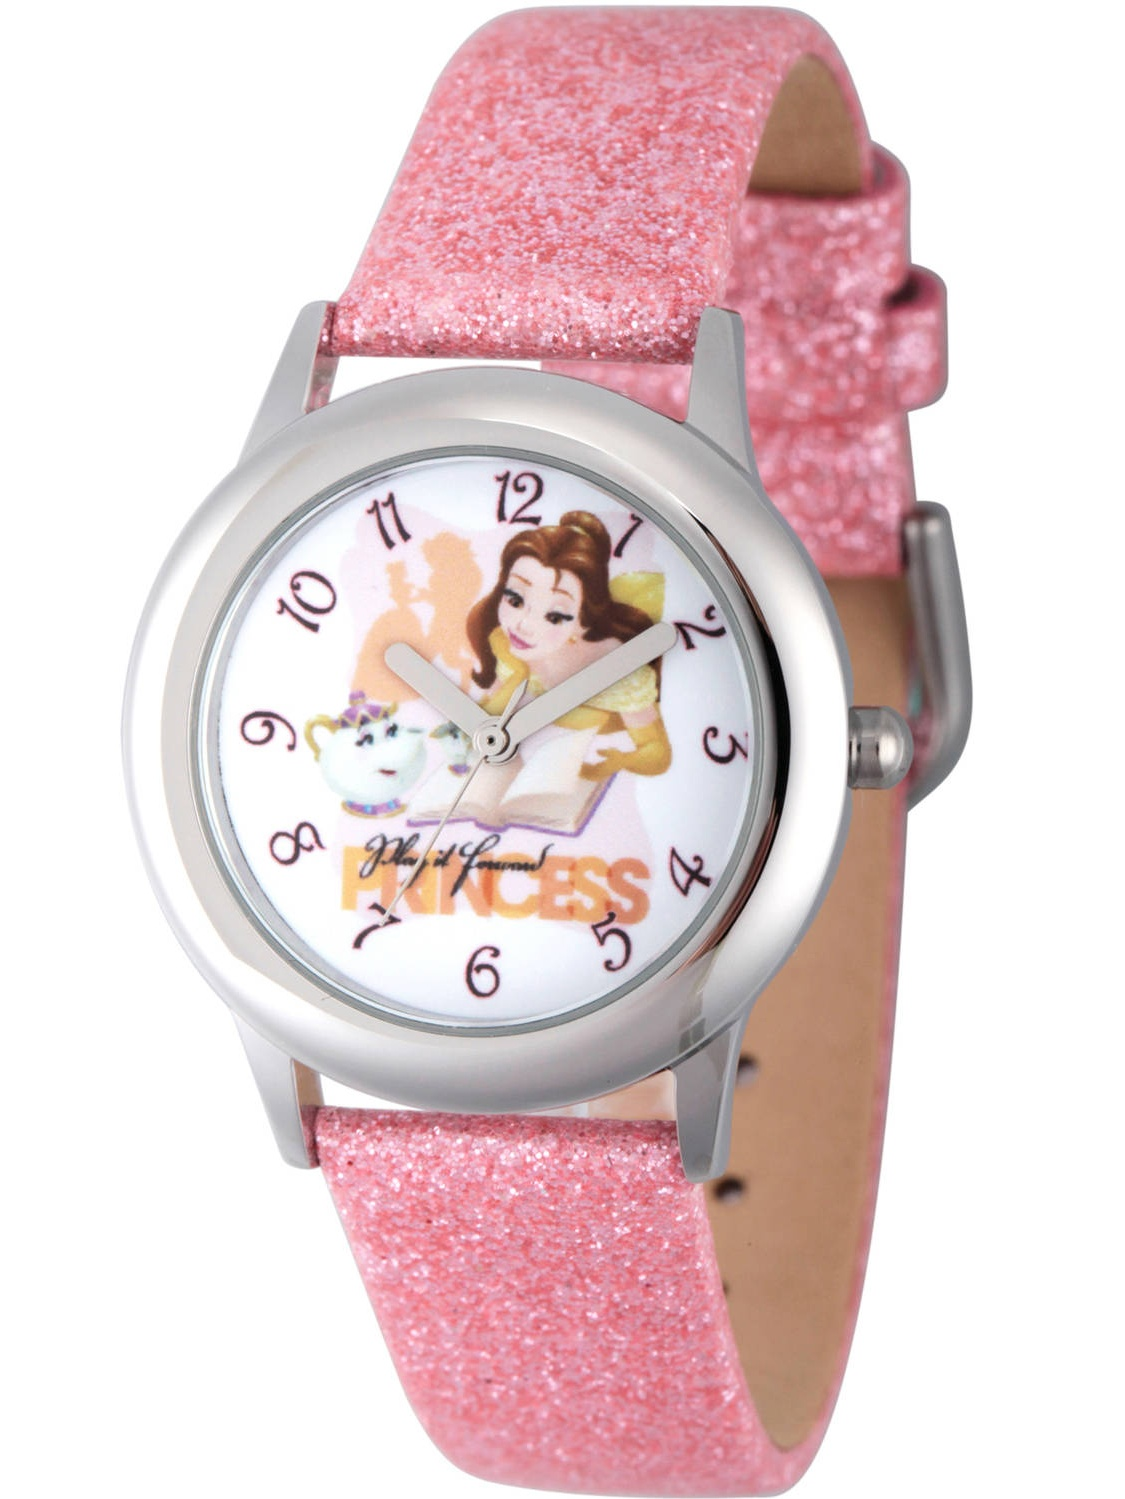 Princess Belle, Mrs Potts, and Chip Girls' Stainless Steel Watch, Pink Glitter Strap